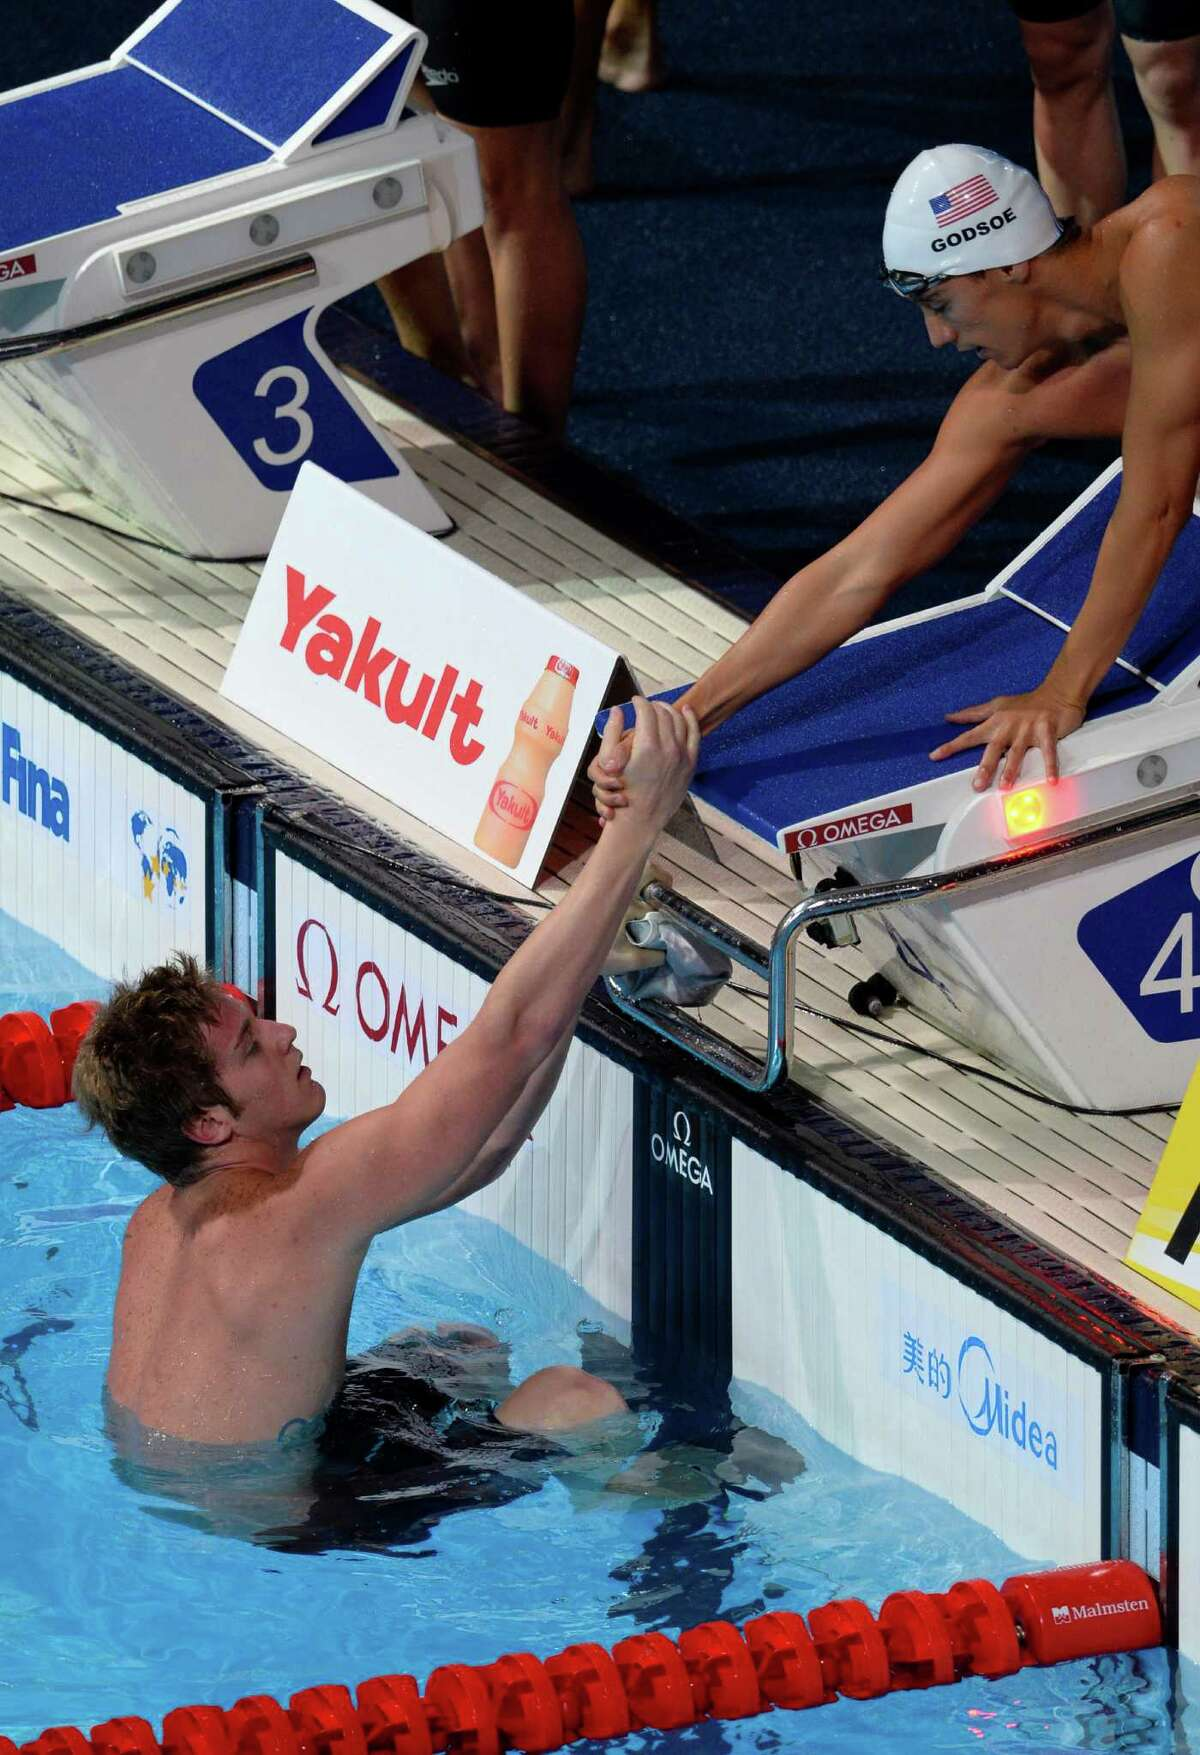 US swimmer Eugene Godsoe (R) shakes hands with US swimmer James Feigen after the heats of the men's 4x100-metre medley relay swimming event in the FINA World Championships at Palau Sant Jordi in Barcelona on August 4, 2013.